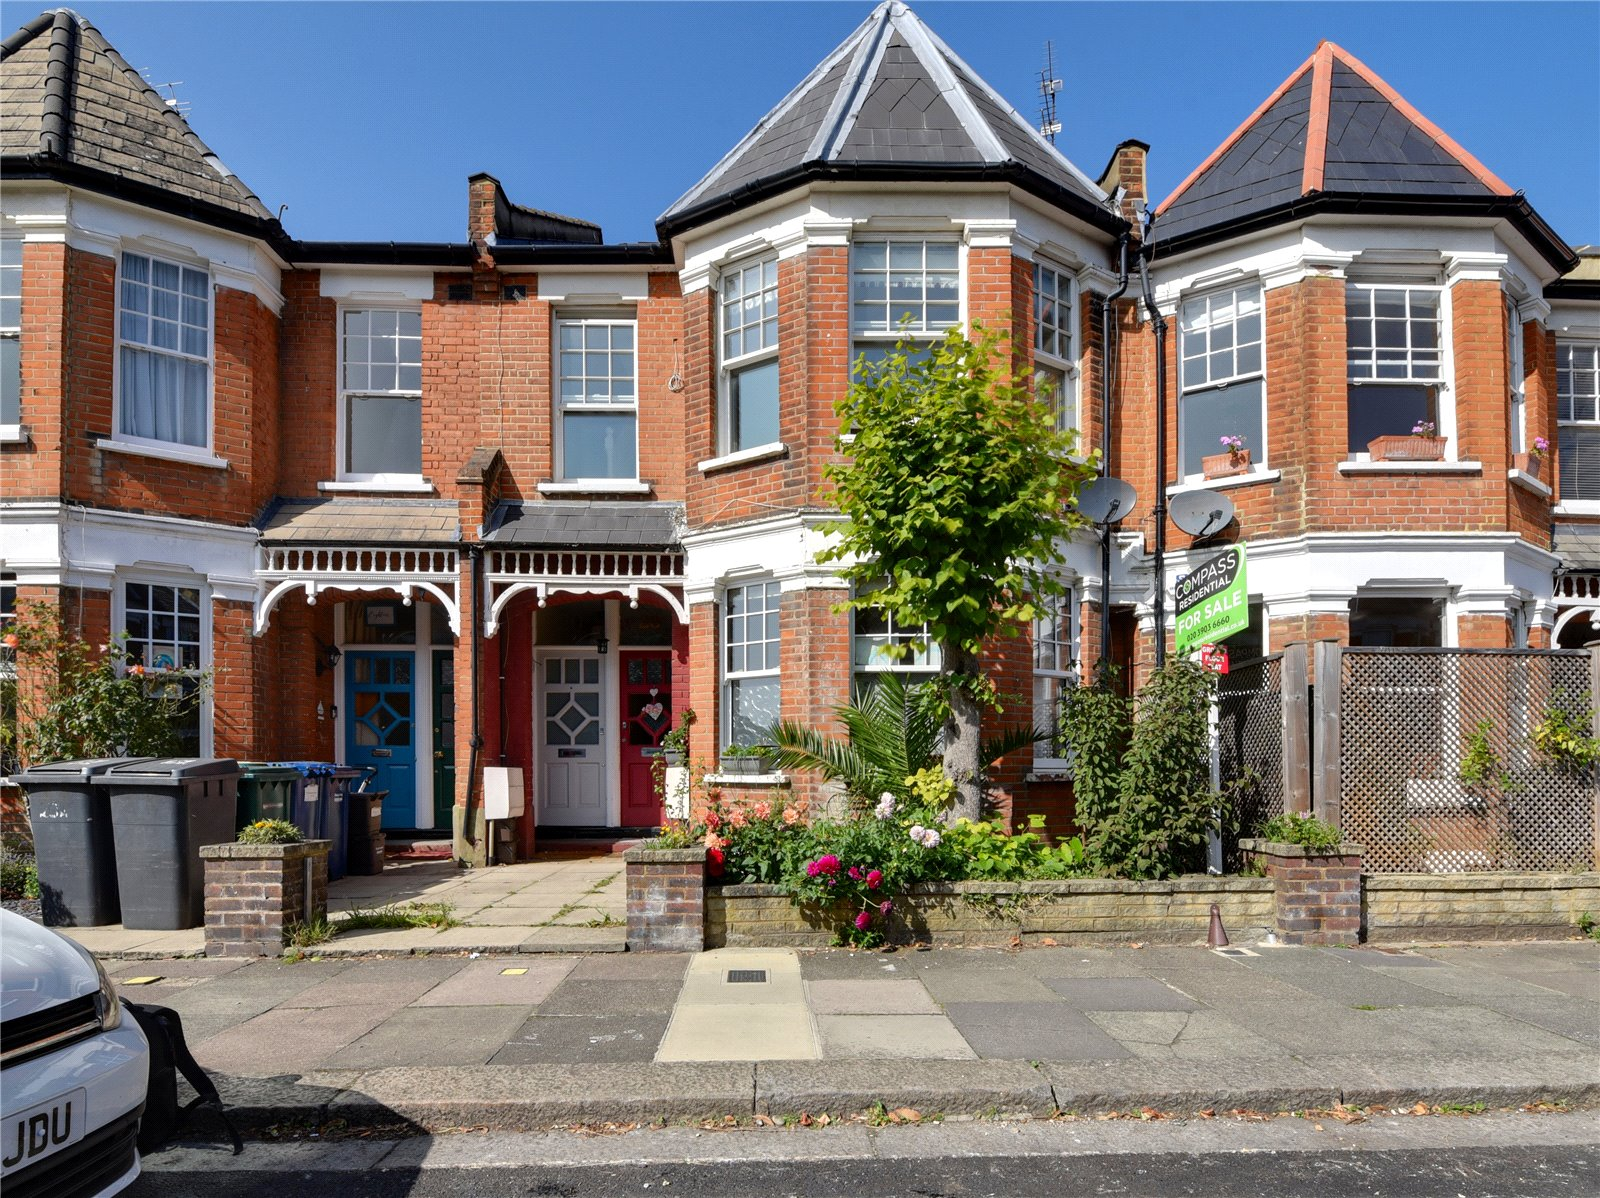 2 bed apartment for sale in East Finchley, N2 0SX 2